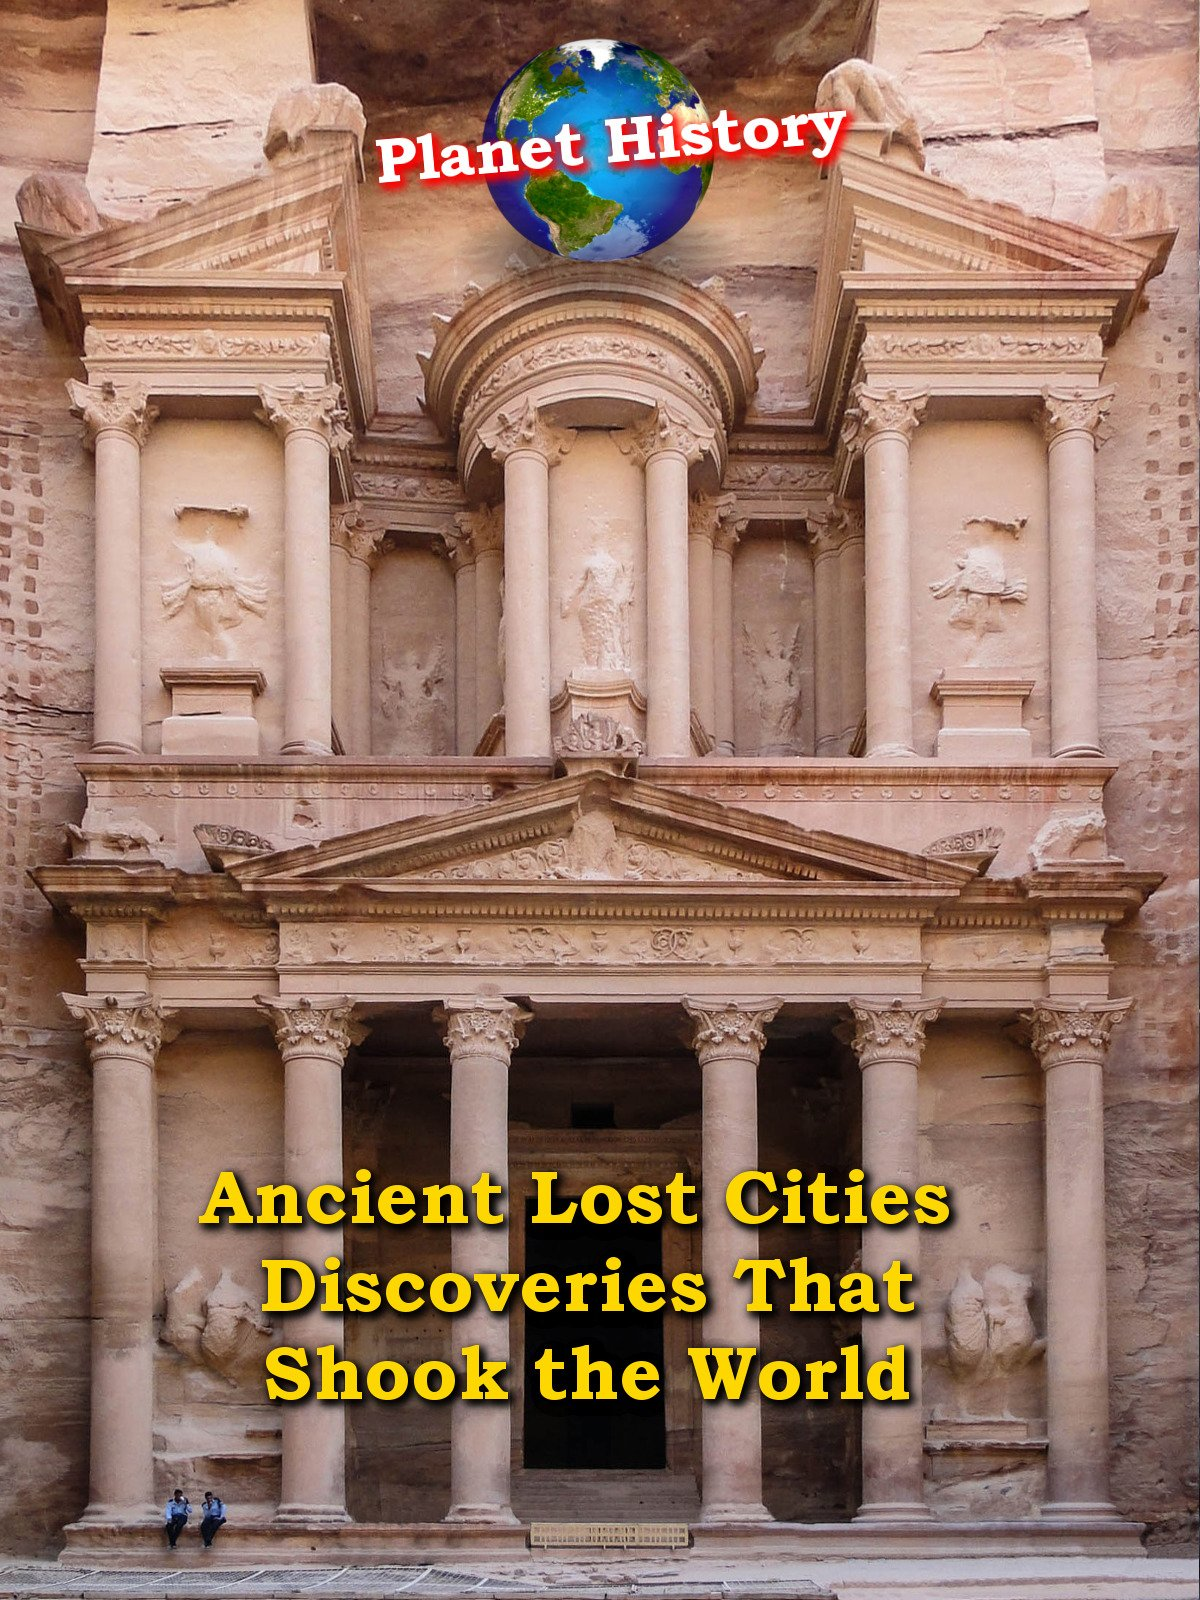 Ancient Lost Cities - Discoveries That Shook the World